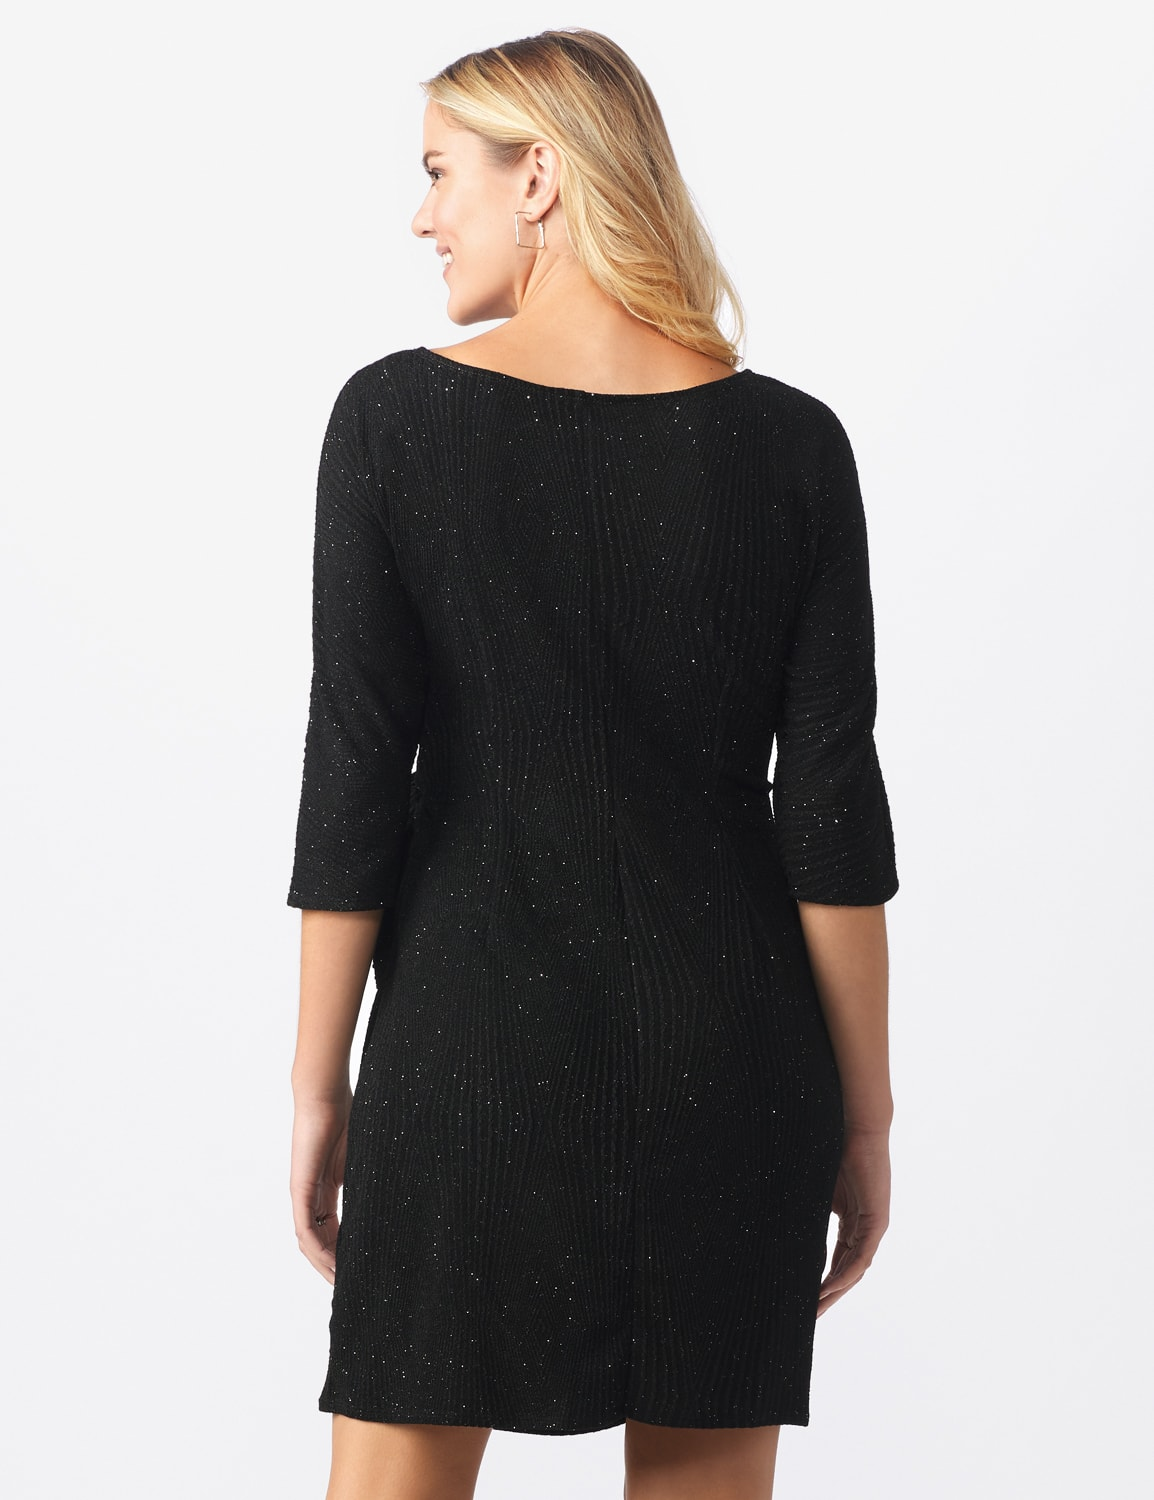 Glitter Knit  Wrap Dress - Misses - Black - Back